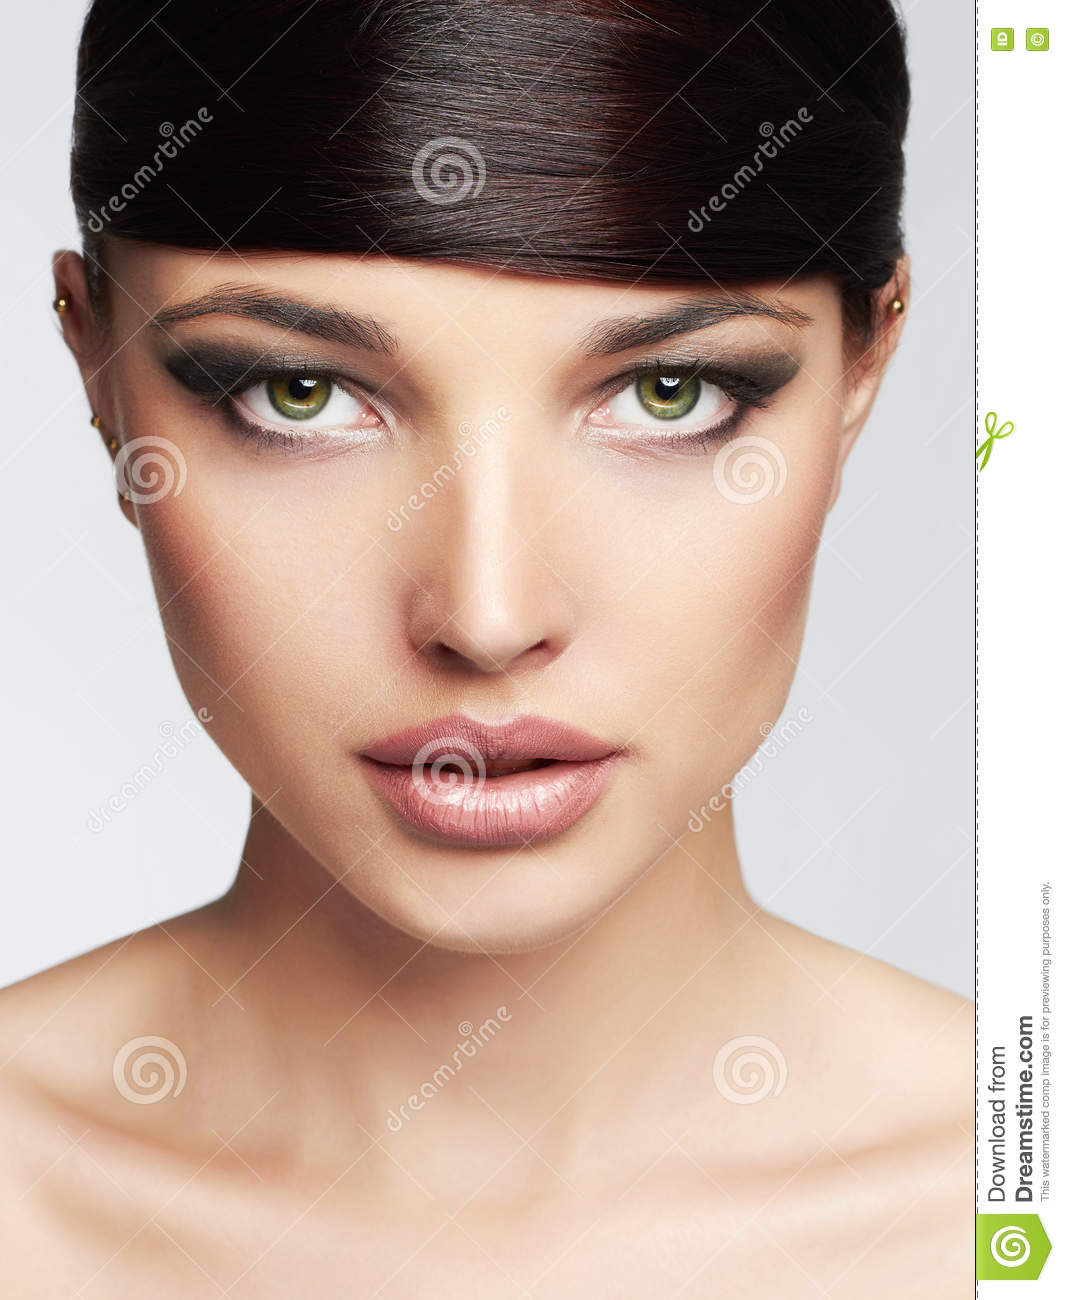 Fashion Beautiful Girl Hairstyle Fringe Professional Makeup Young Beauty Woman Royalty Free